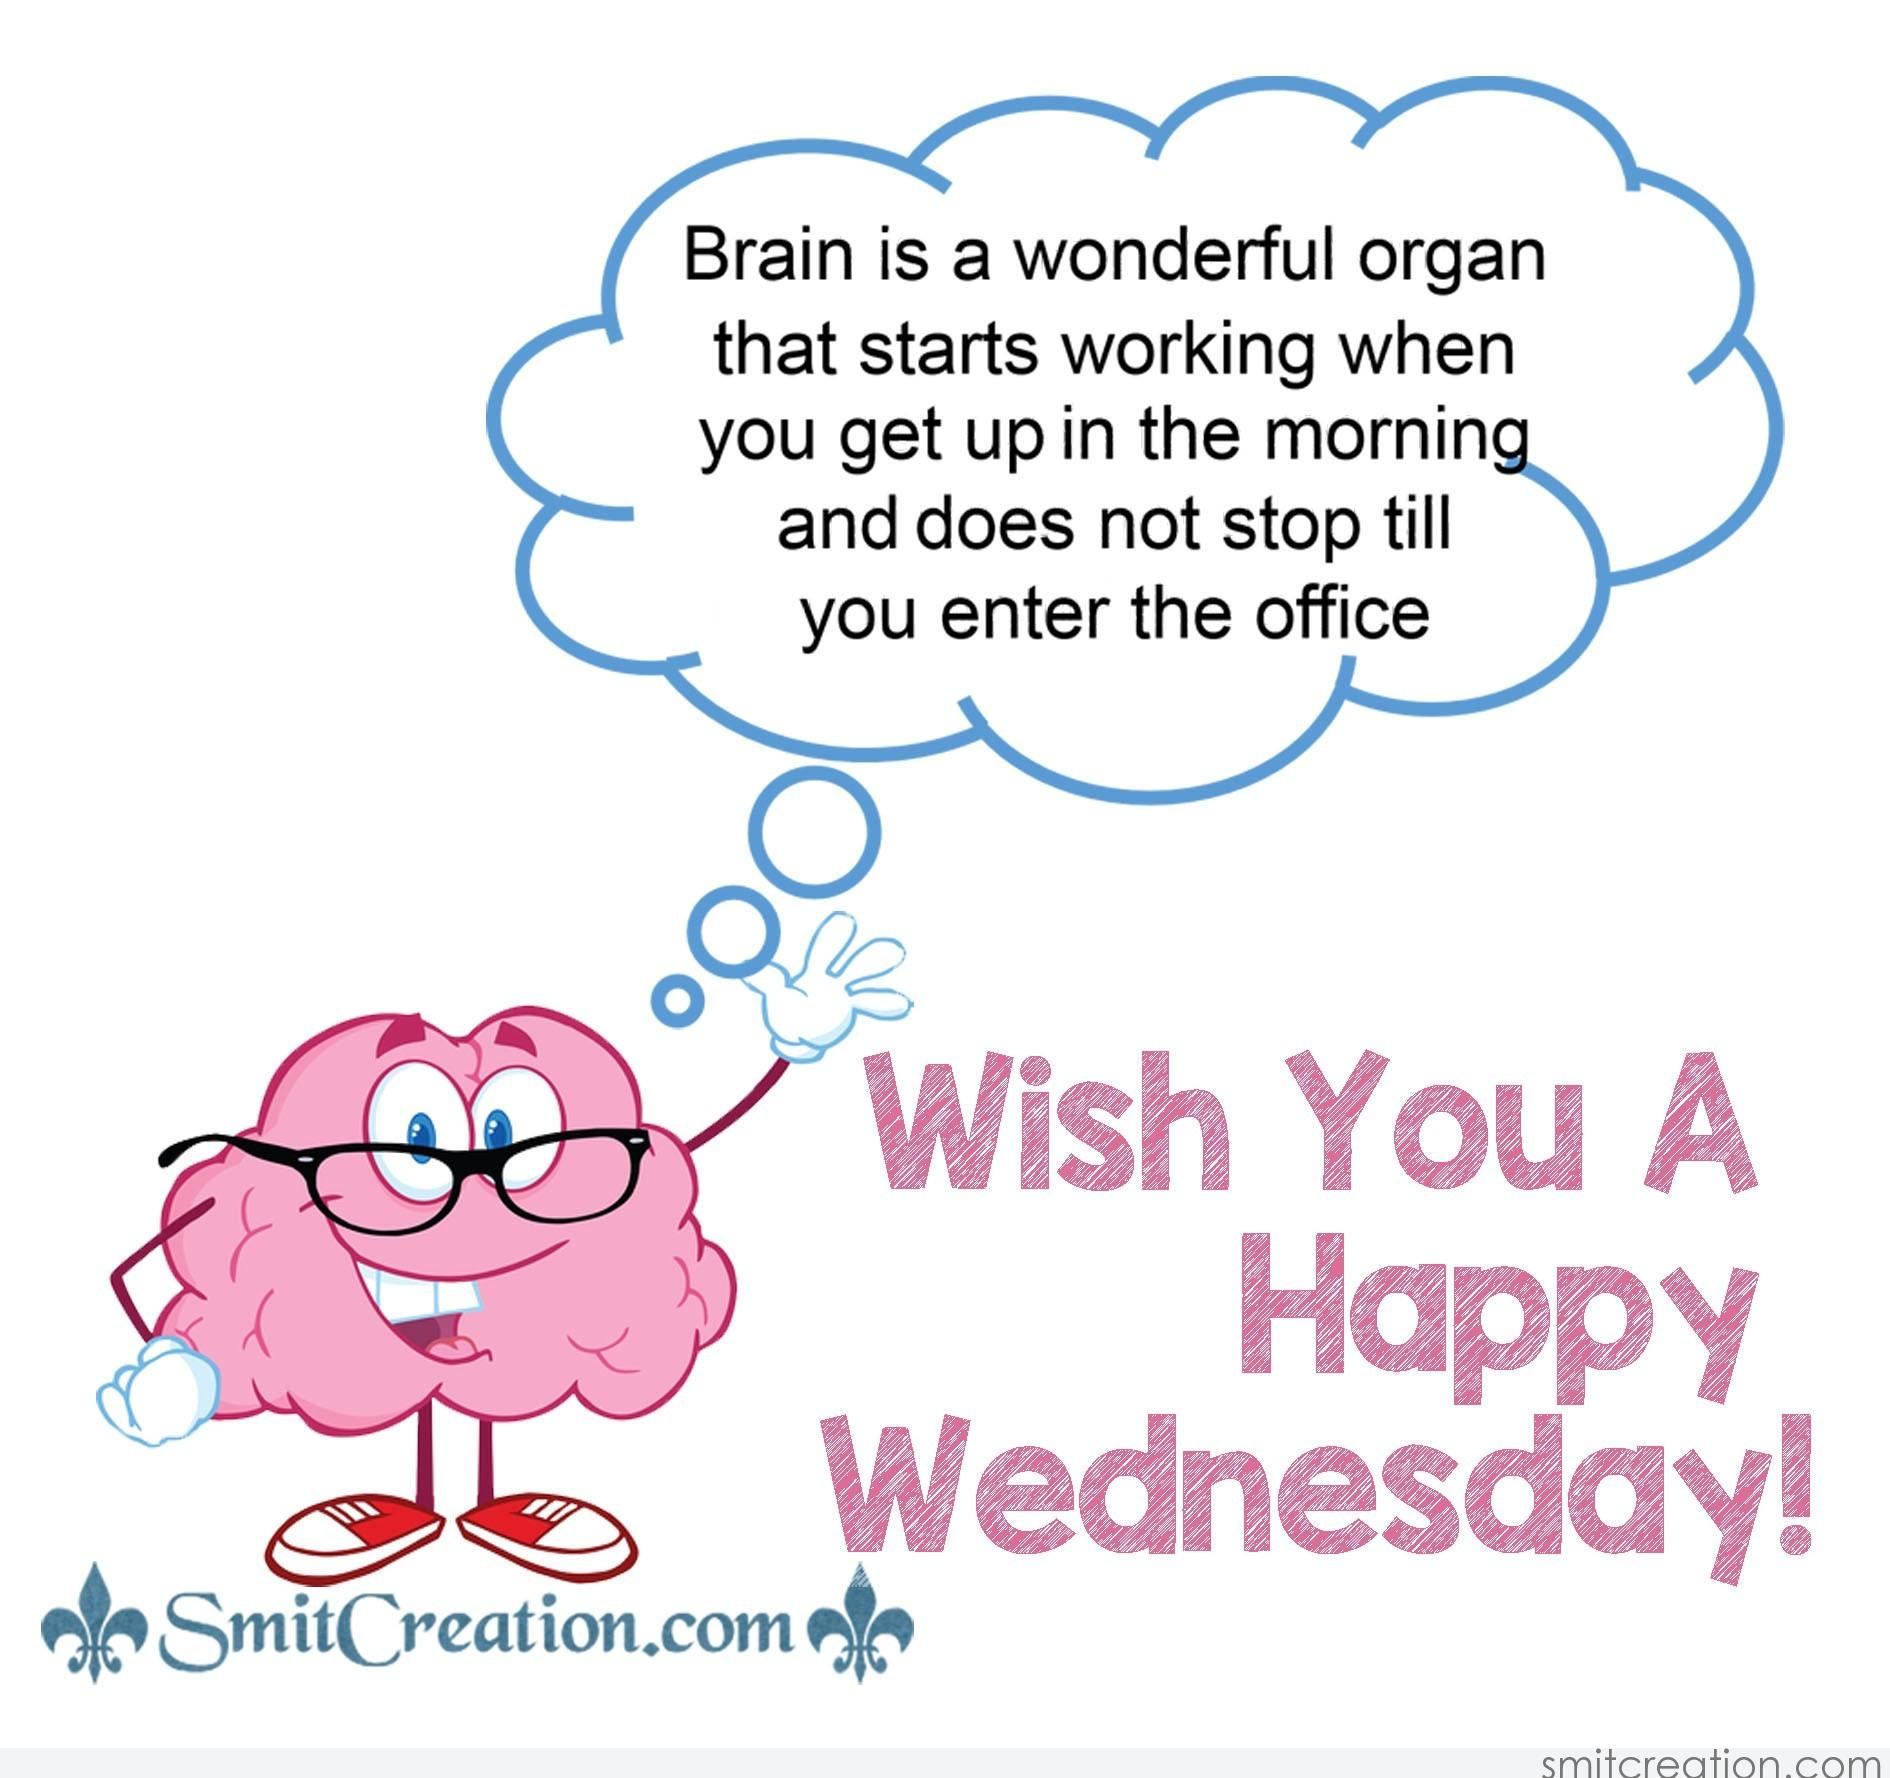 Inspirational Day Quotes: Wish You A Happy Wednesday!